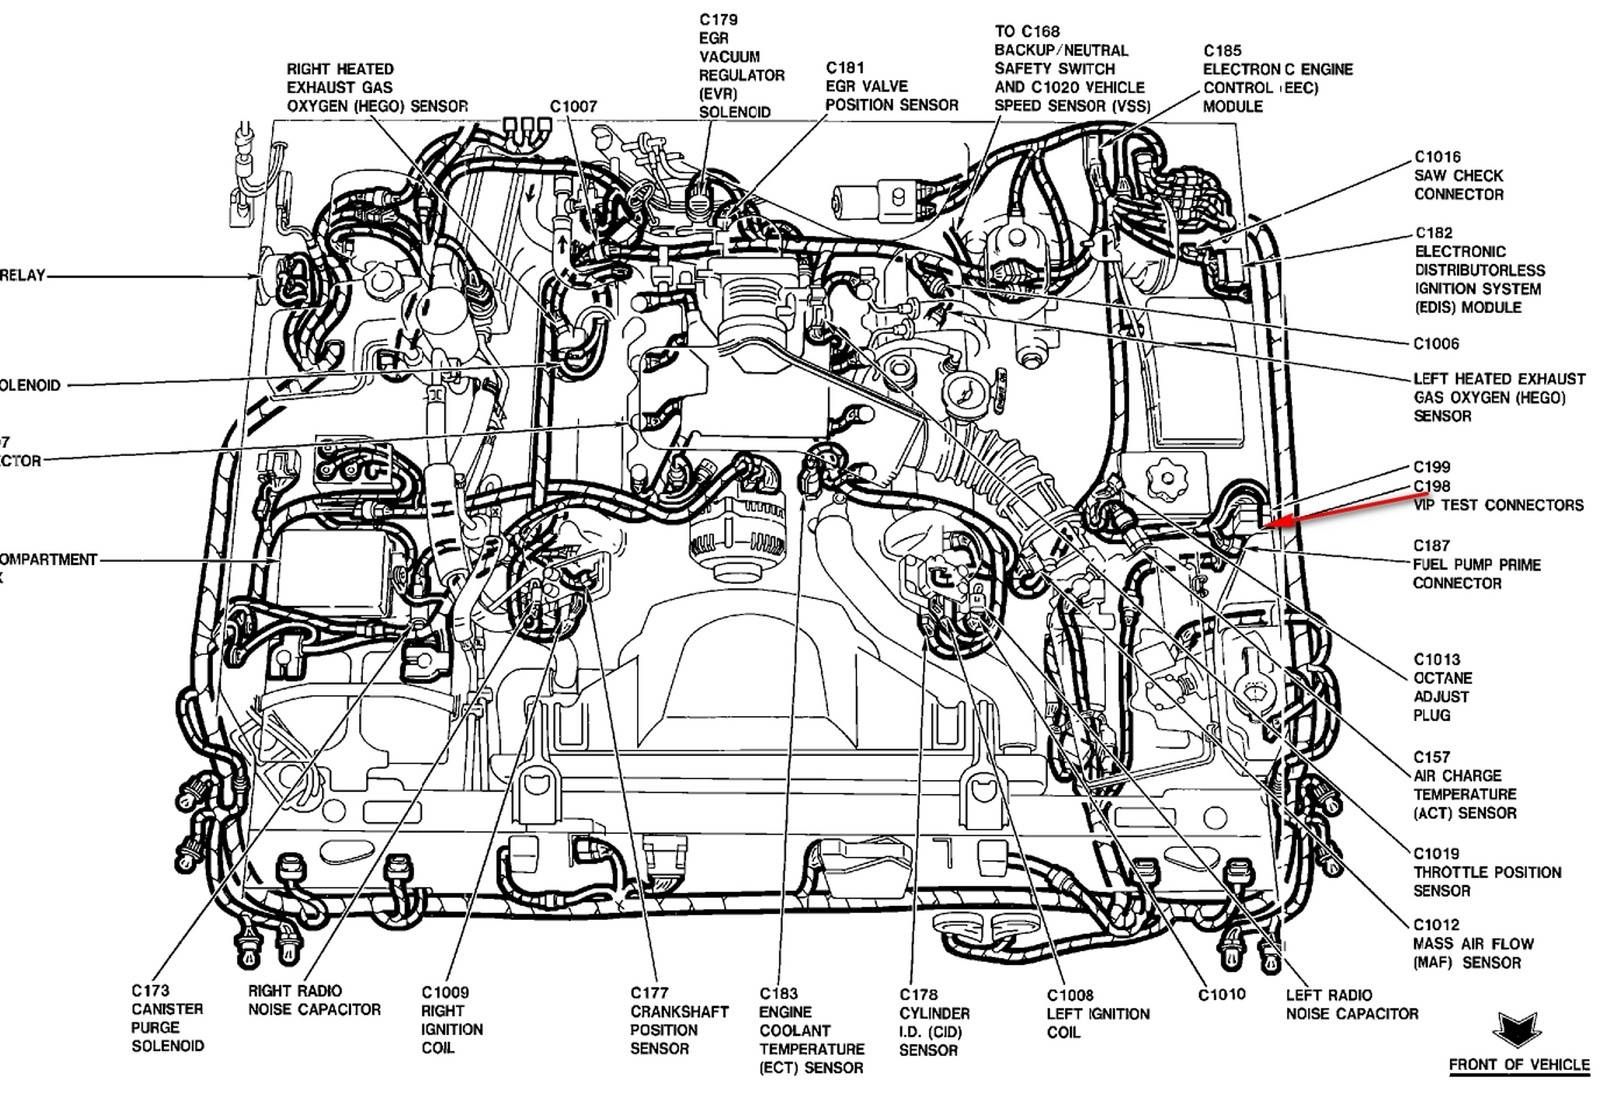 1985 grand marquis ignition module wiring diagram ford 11 12